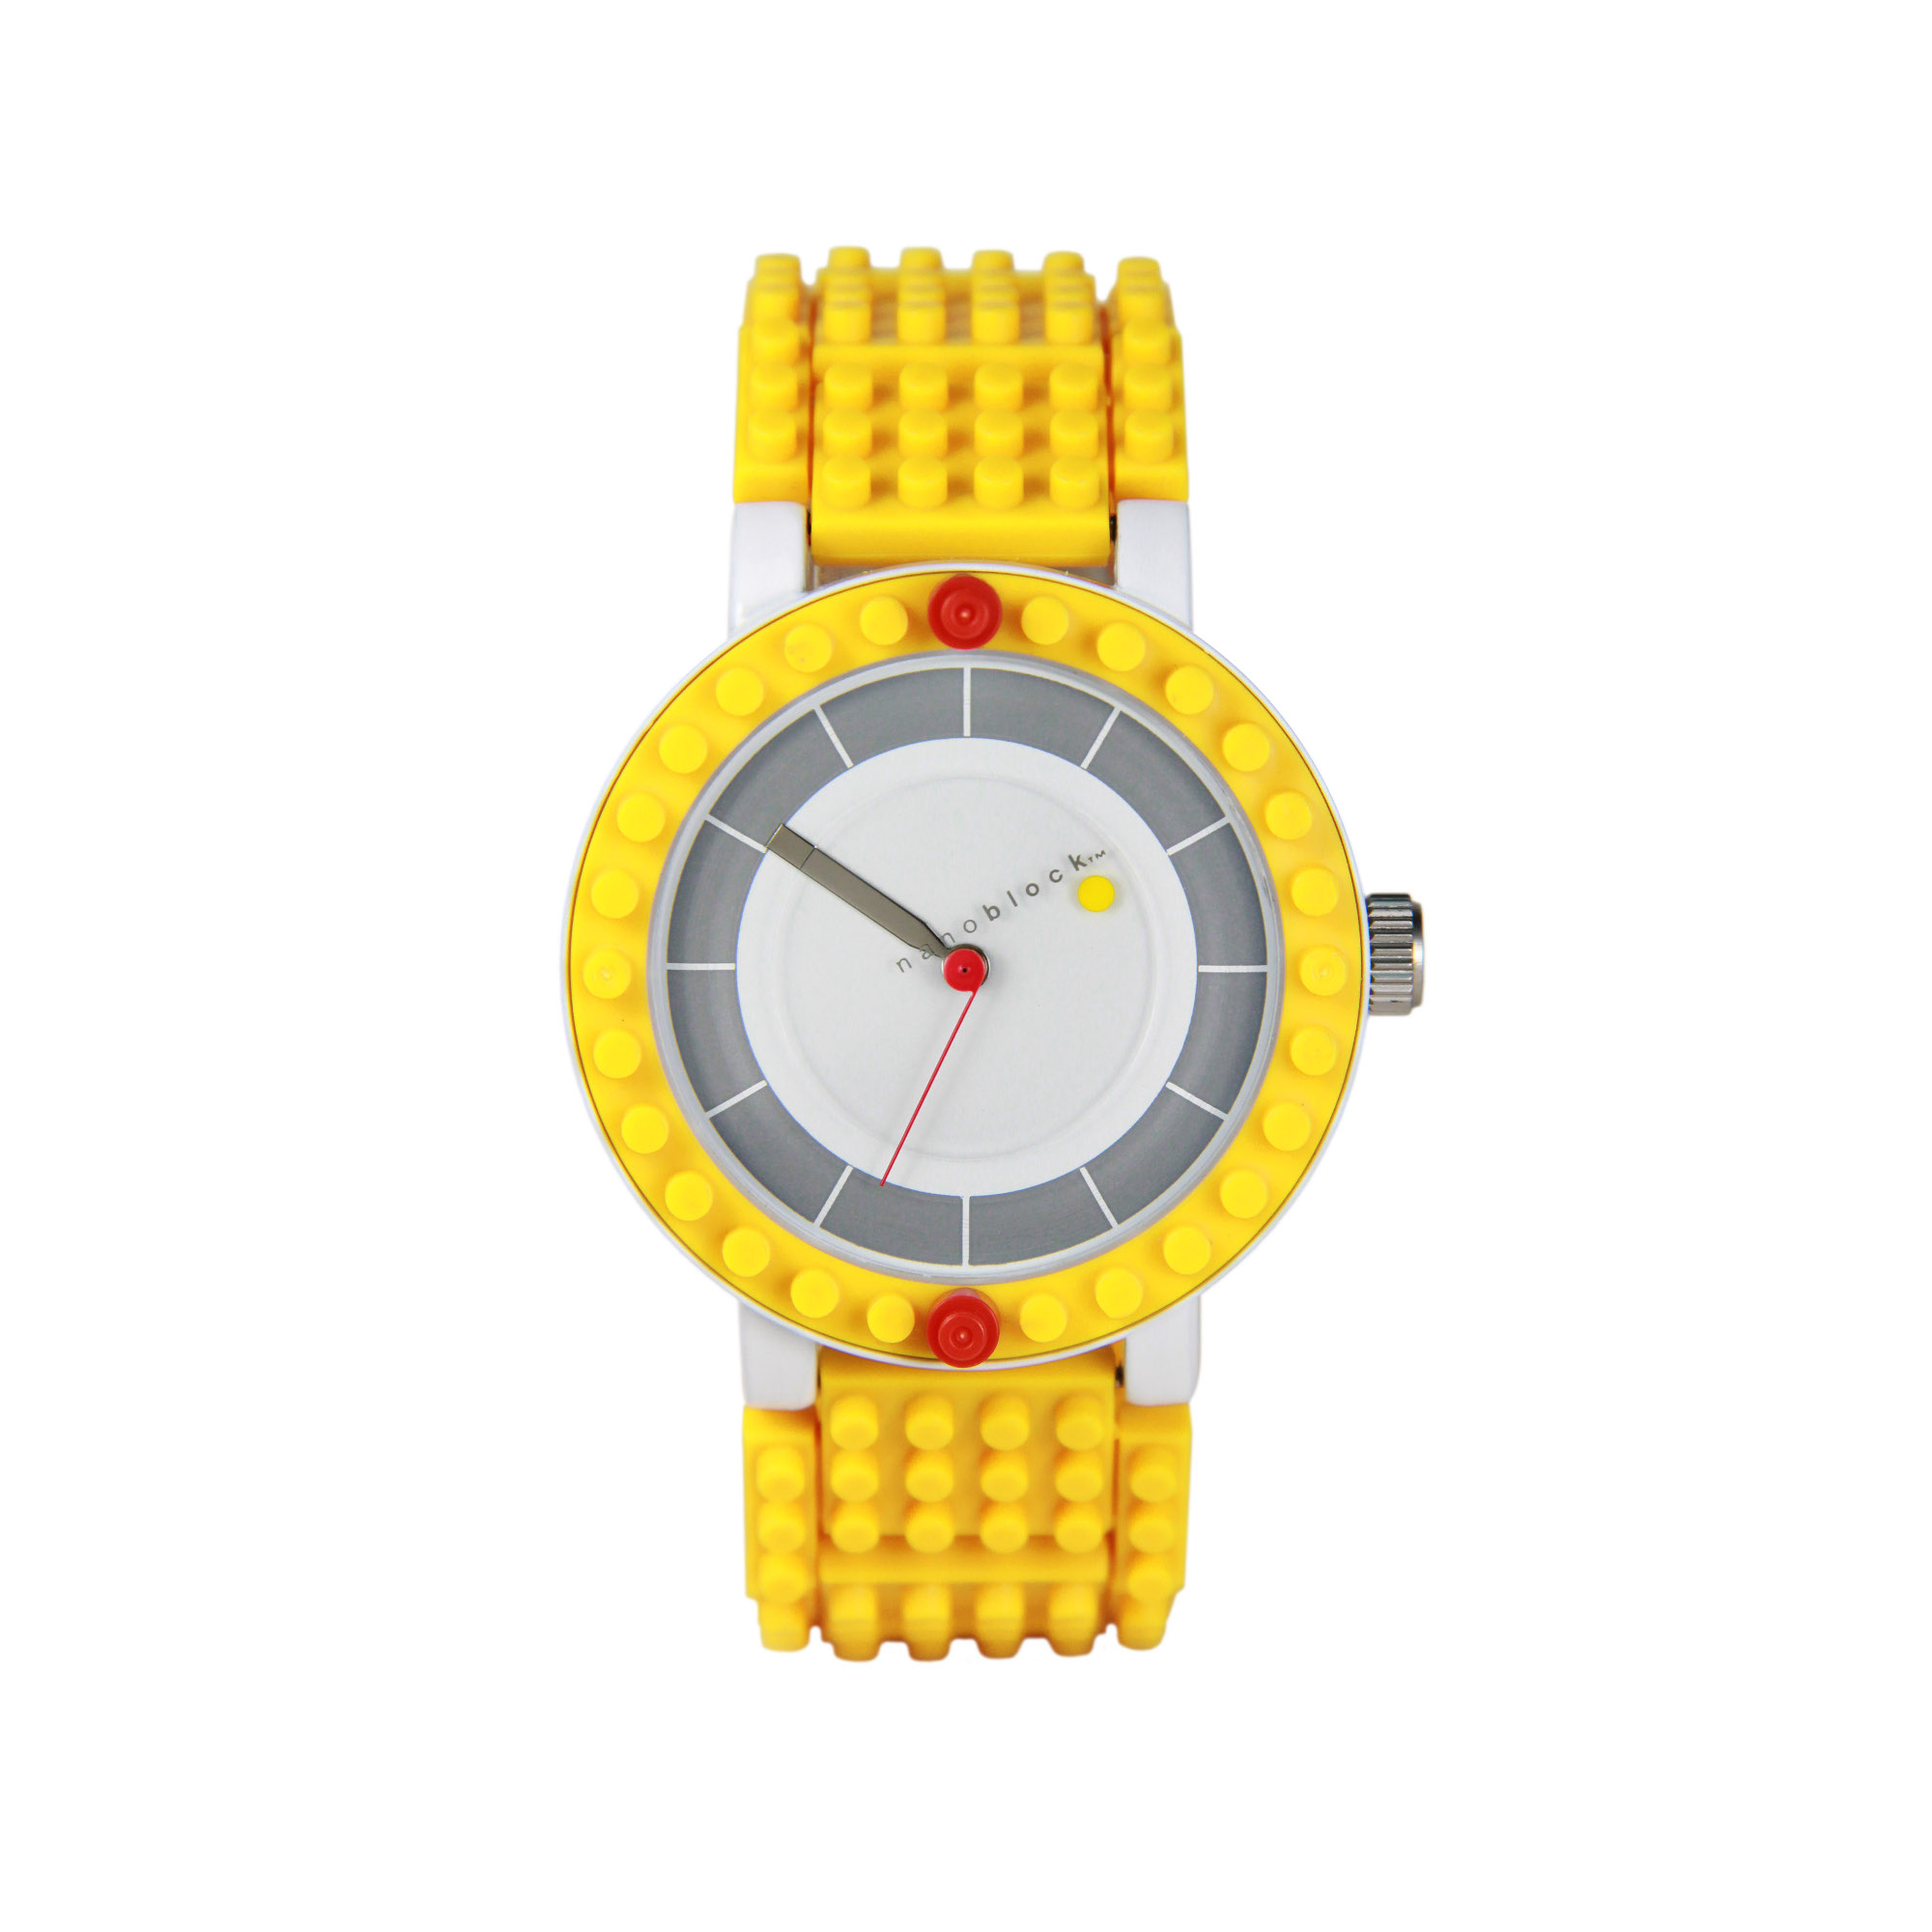 Nanoblocktime All Rounder Watch, Yellow by Beta Enteprises Inc.